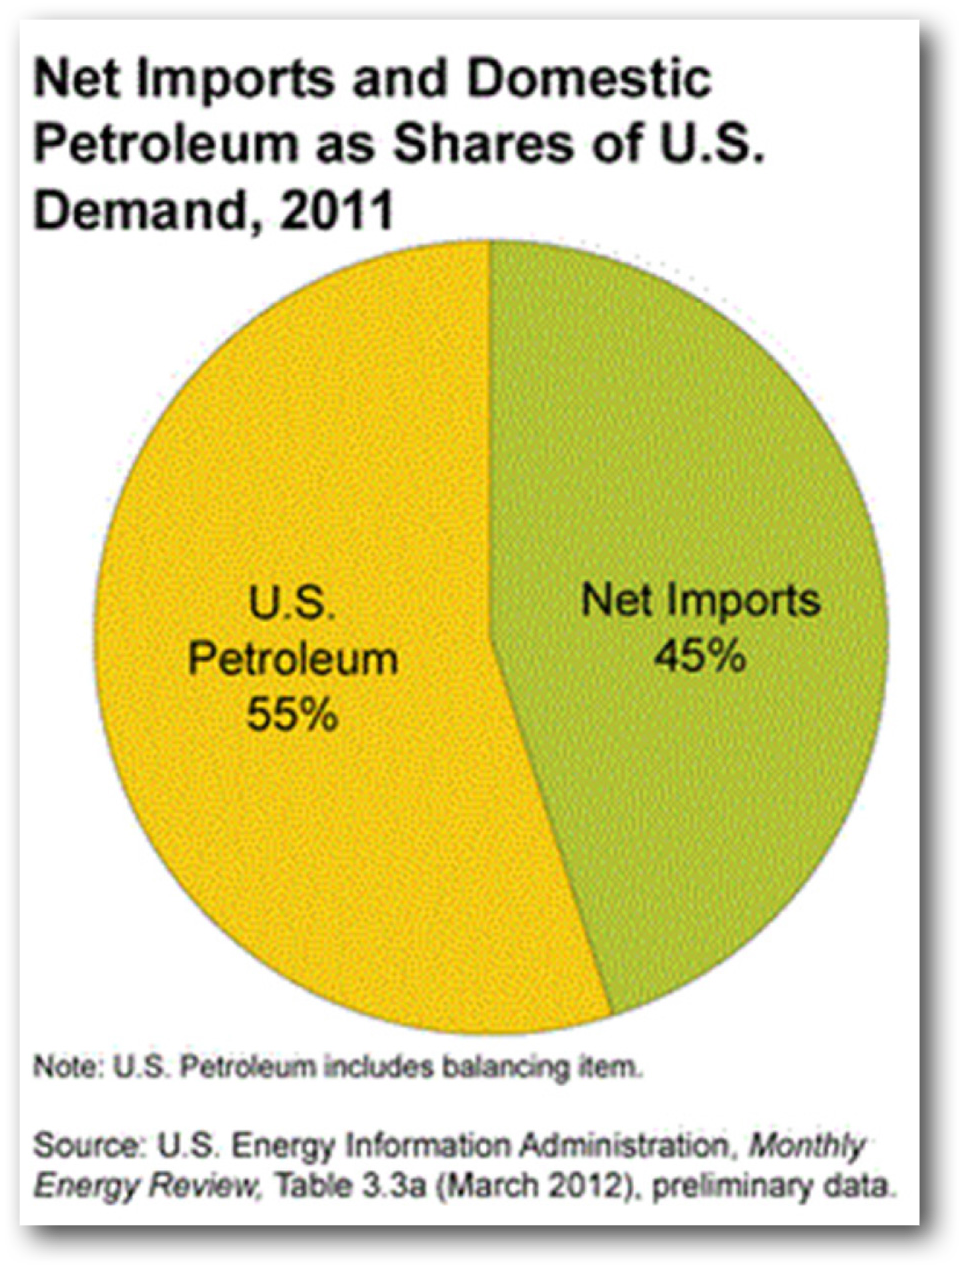 Net_Imports_Domestic_Petro.jpg